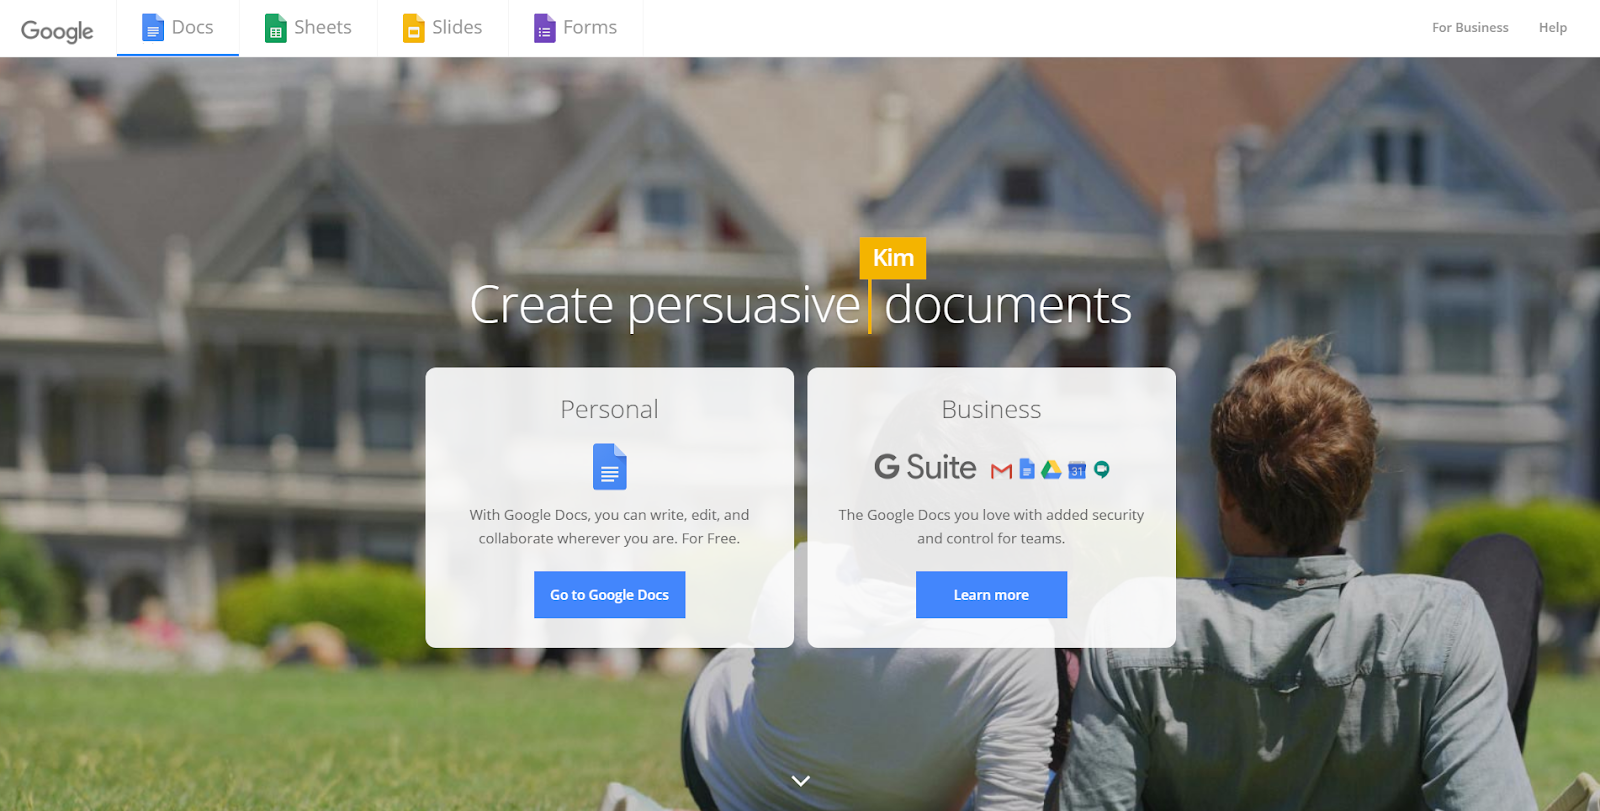 The best landing page builder to validate a product or business idea: Google Docs